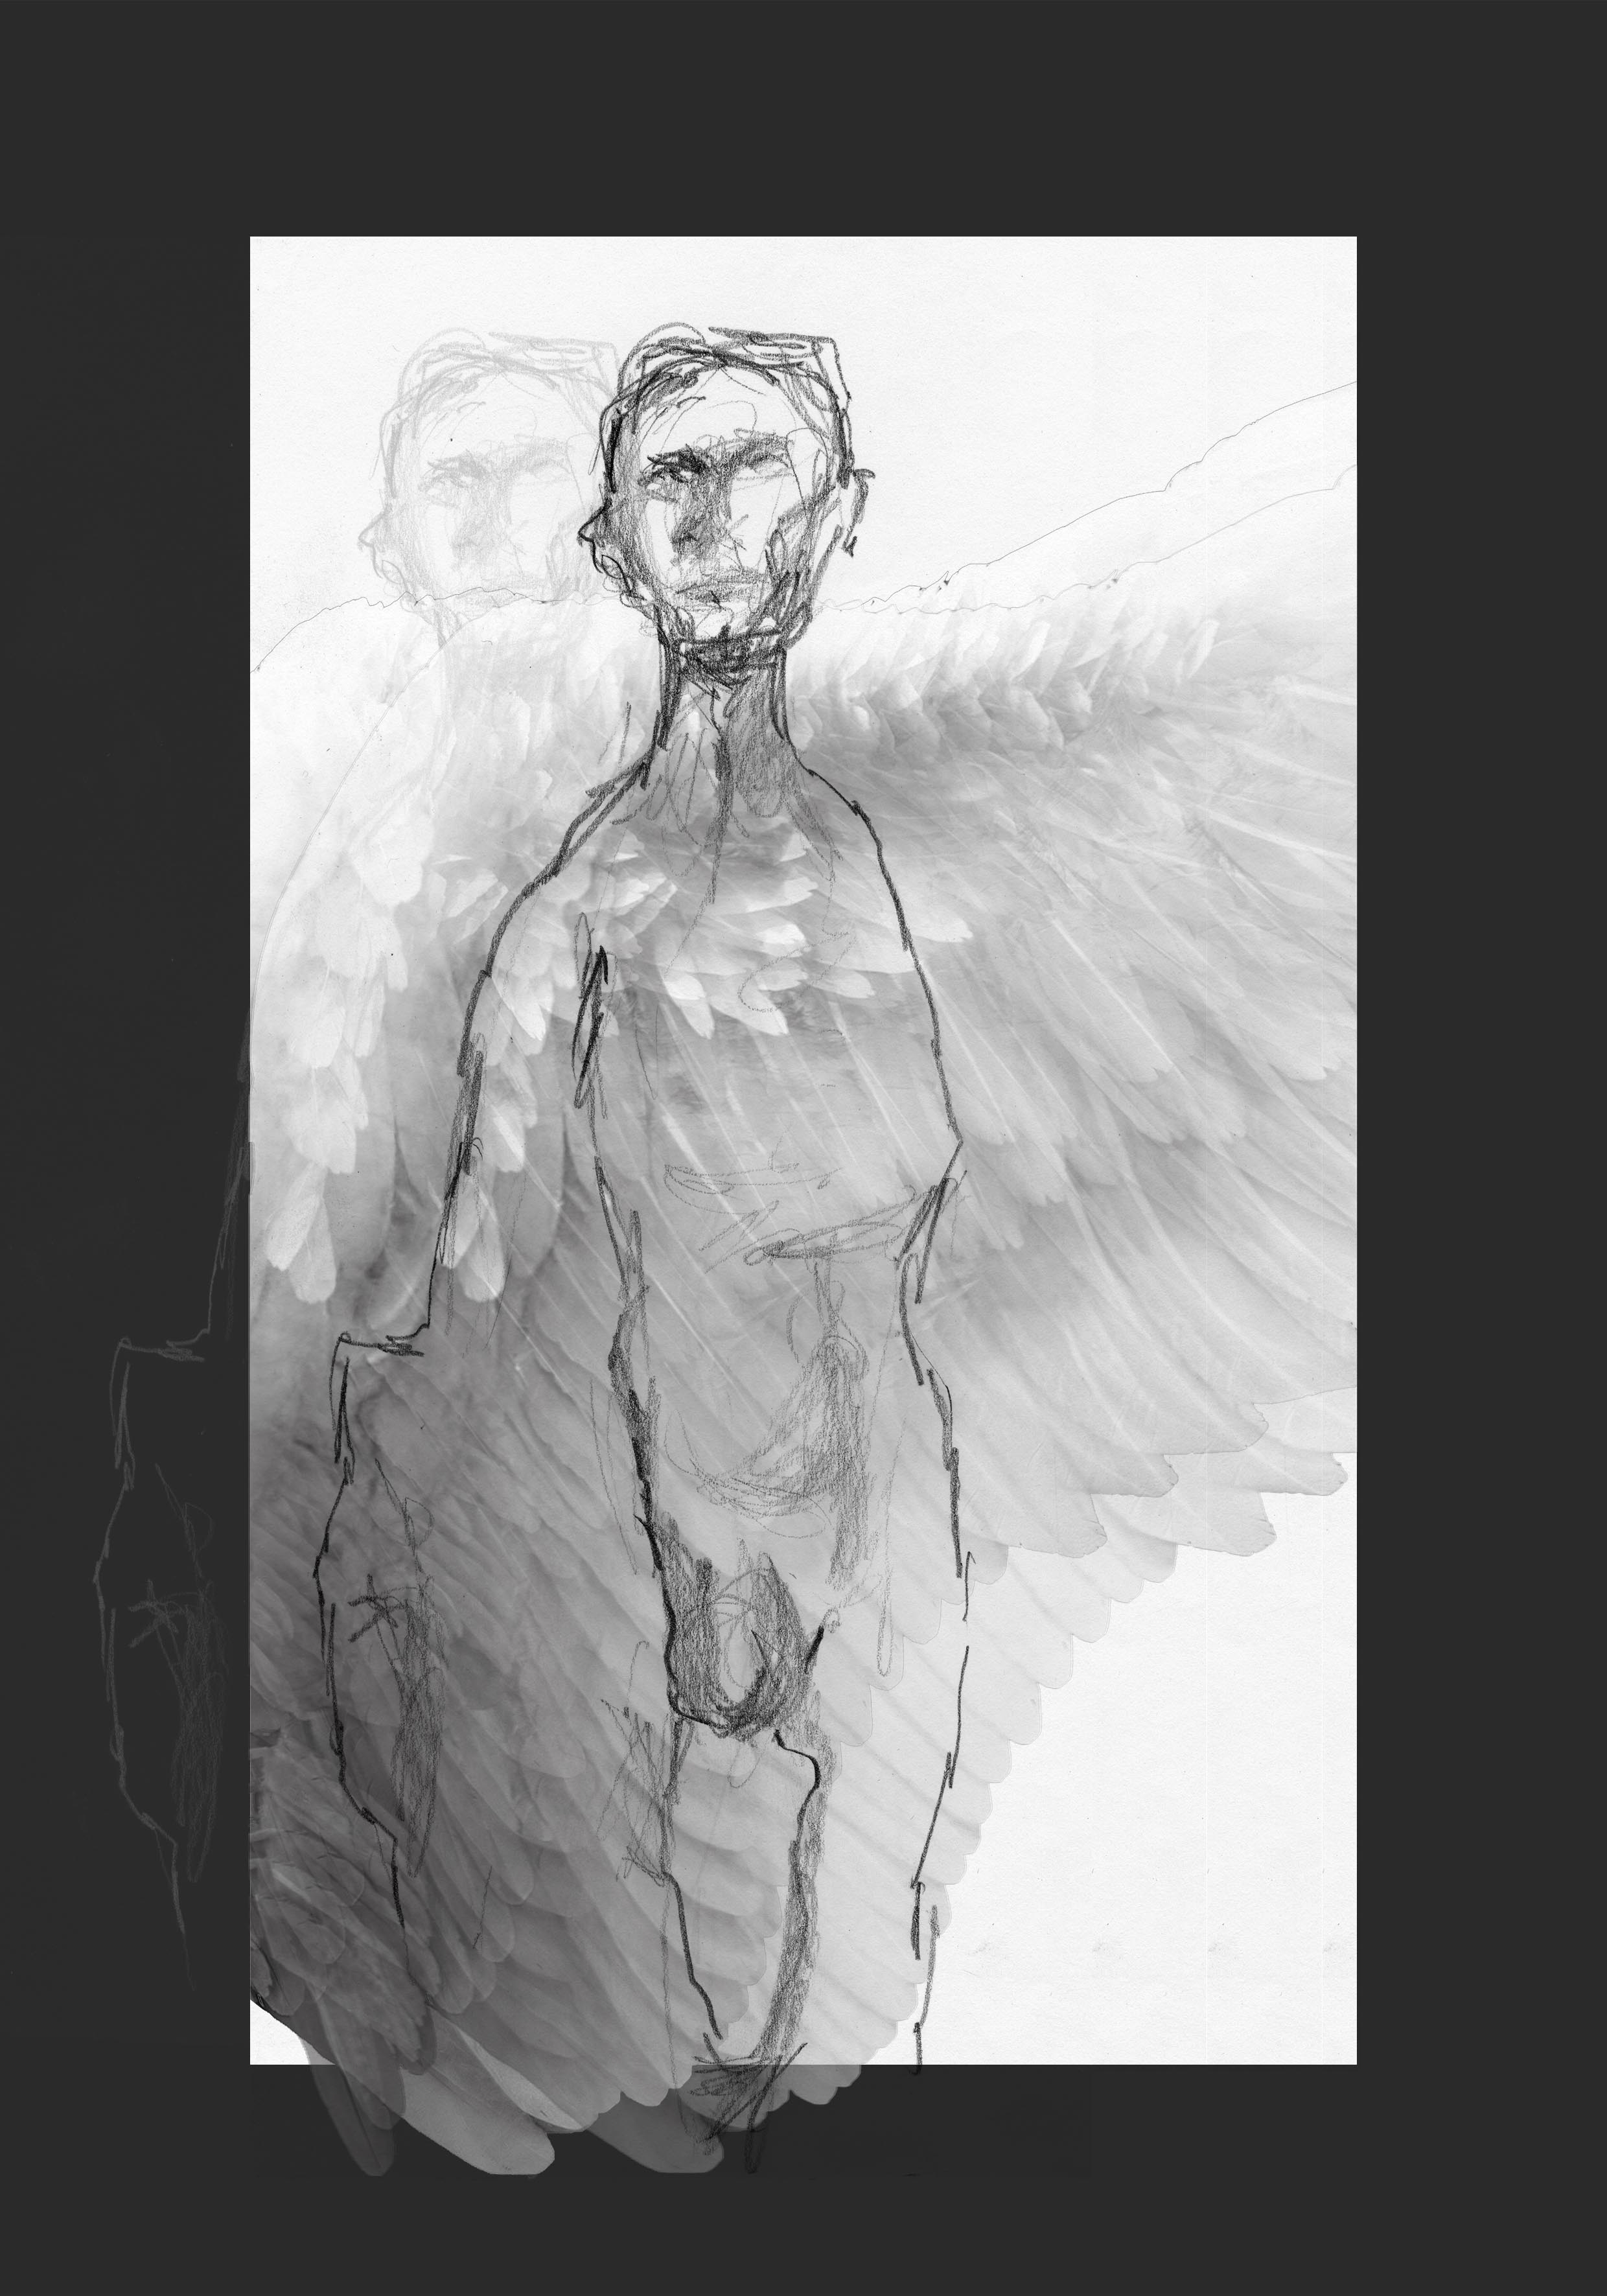 Line drawing of sculpture depicting a naked man, as well as angel wings on the website A Better Version